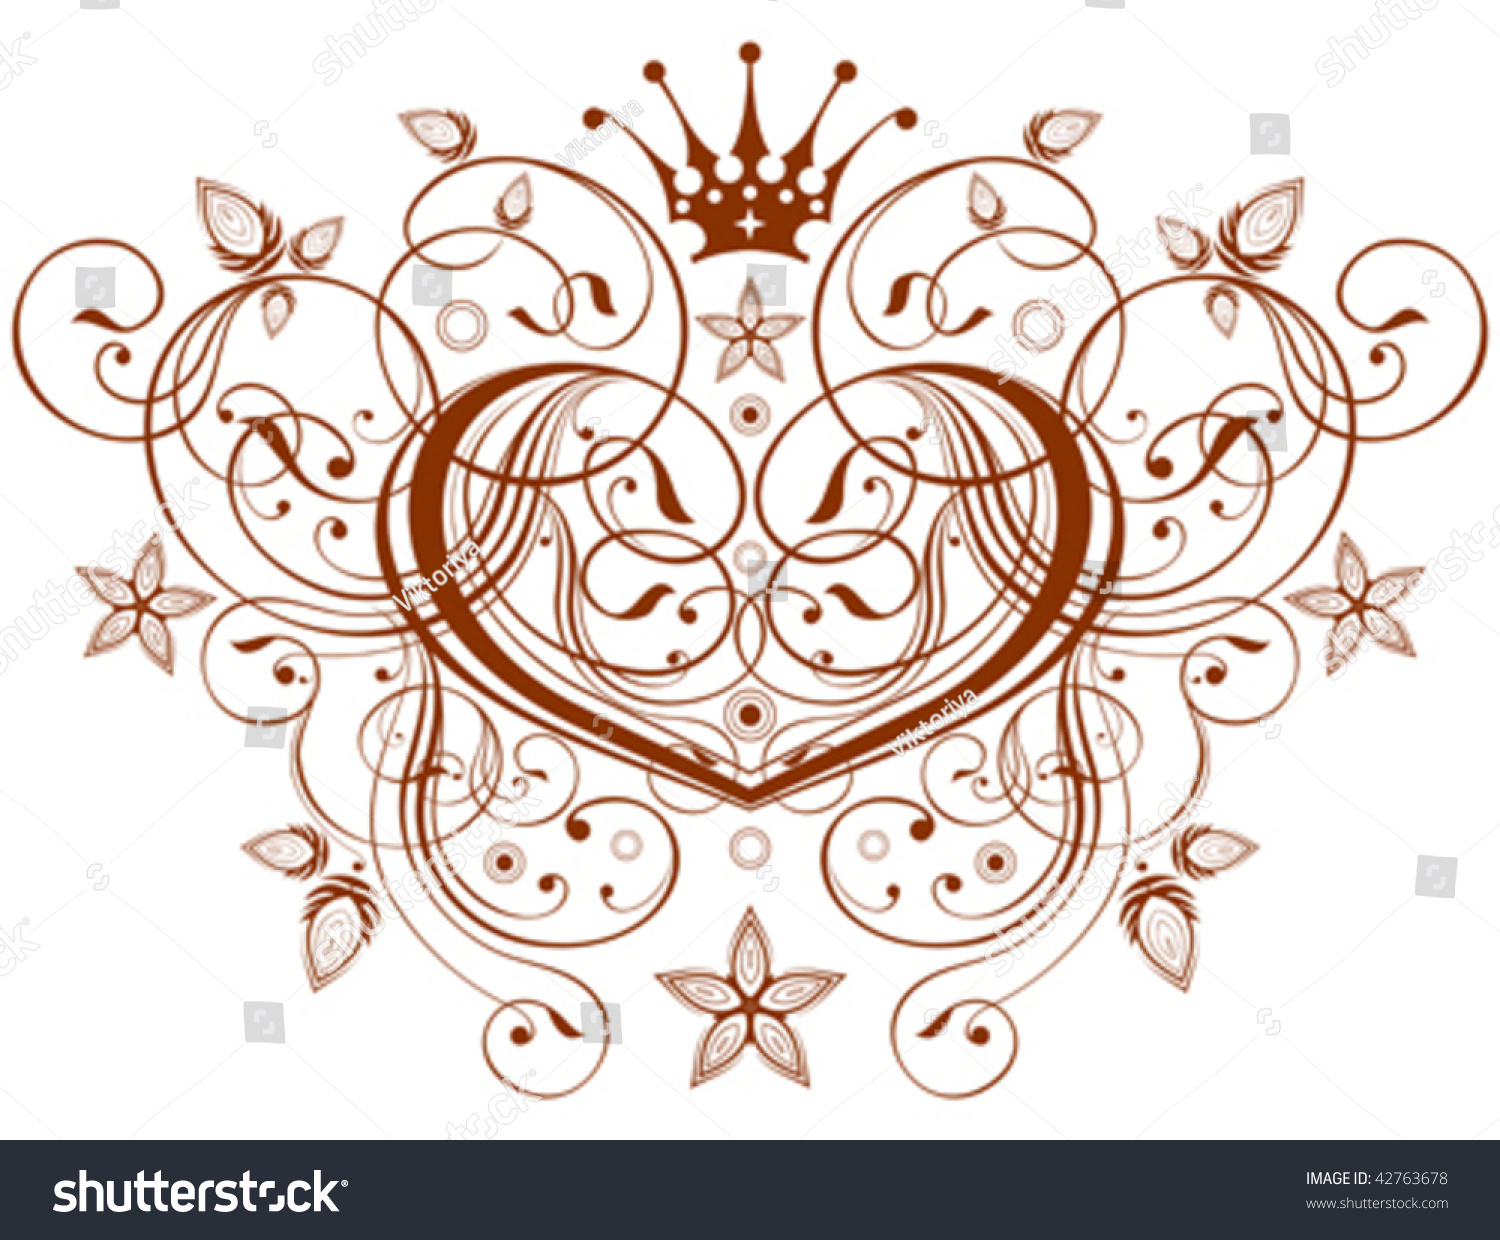 Vector emblem calligraphy heart flowers ornament stock